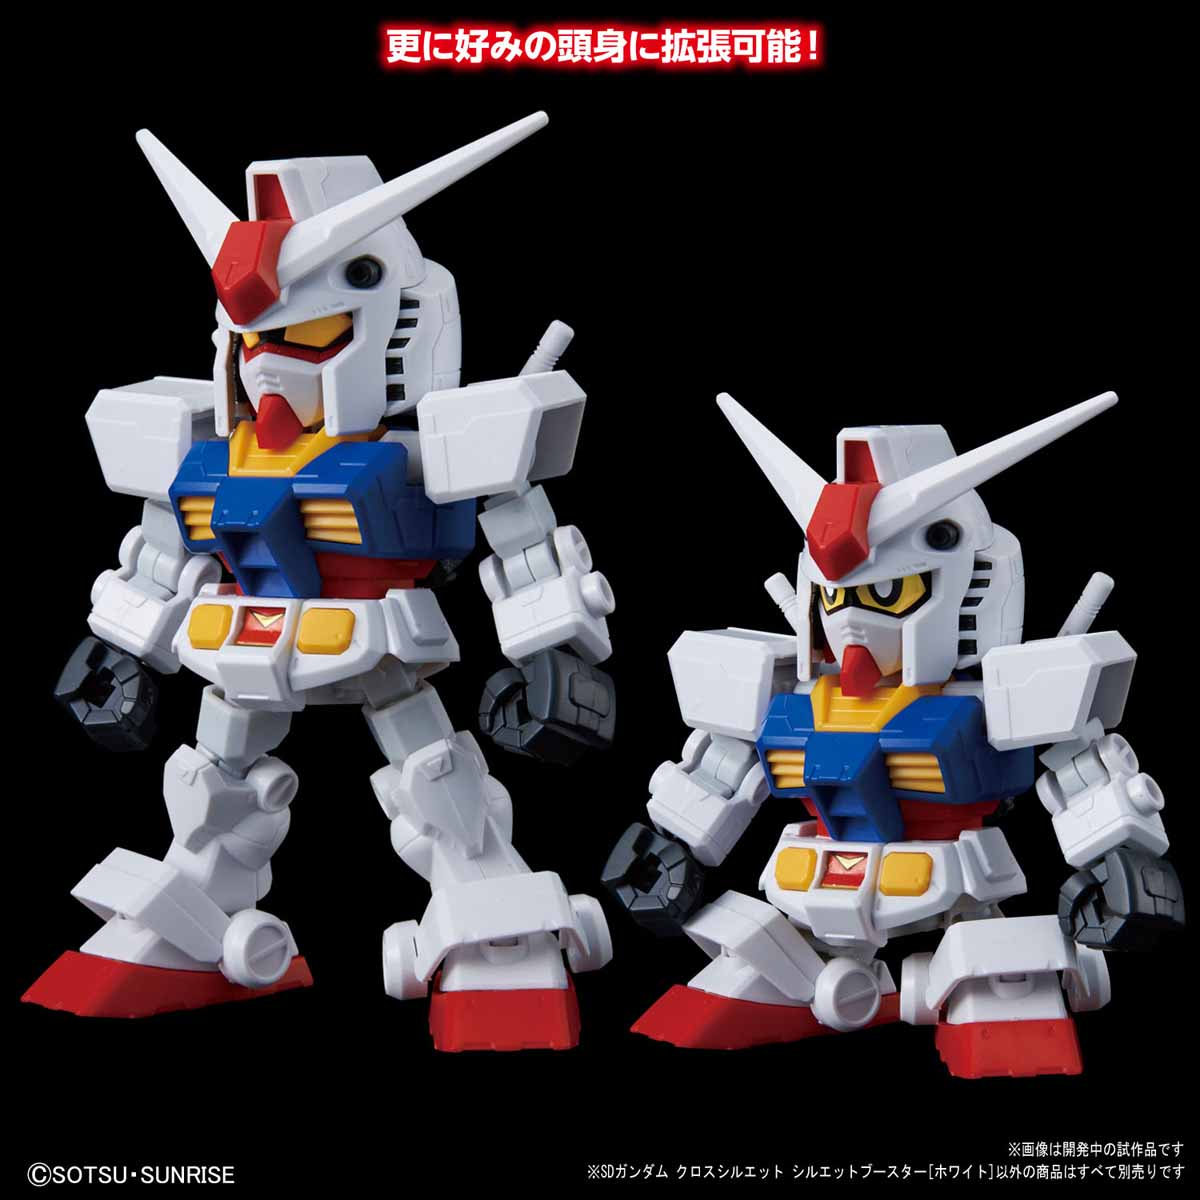 sdcs-silhouette-booster-white (1)